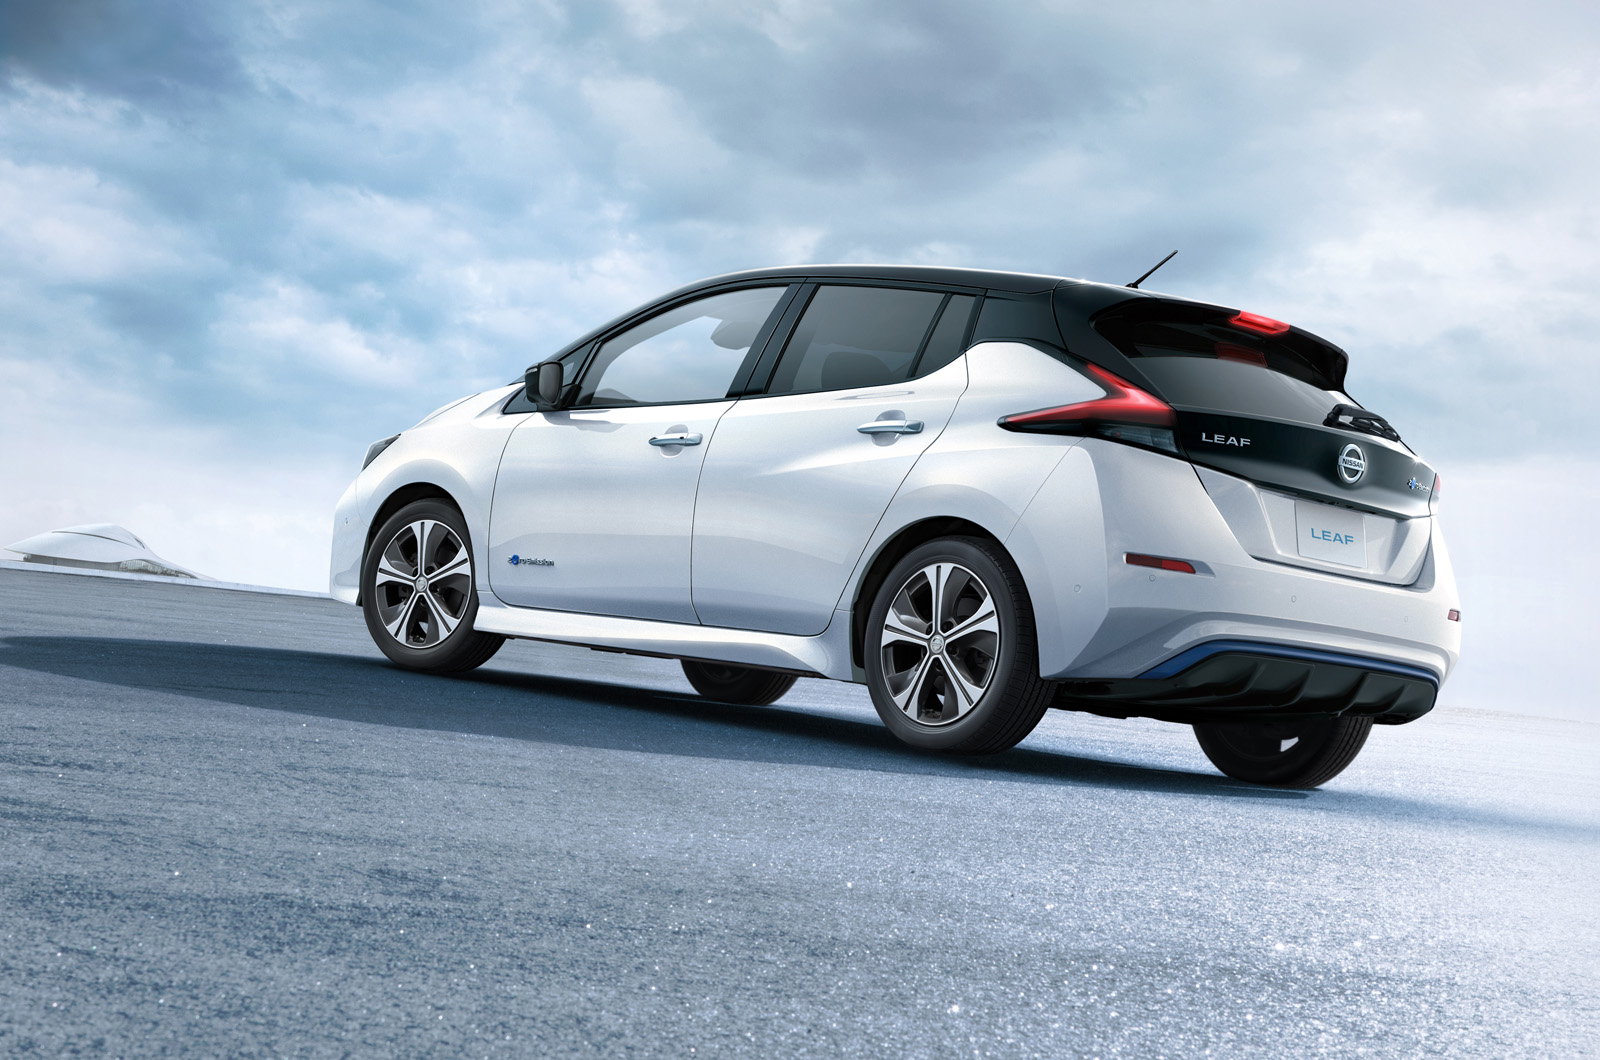 new nissan leaf priced from £21,990 in the uk | autocar